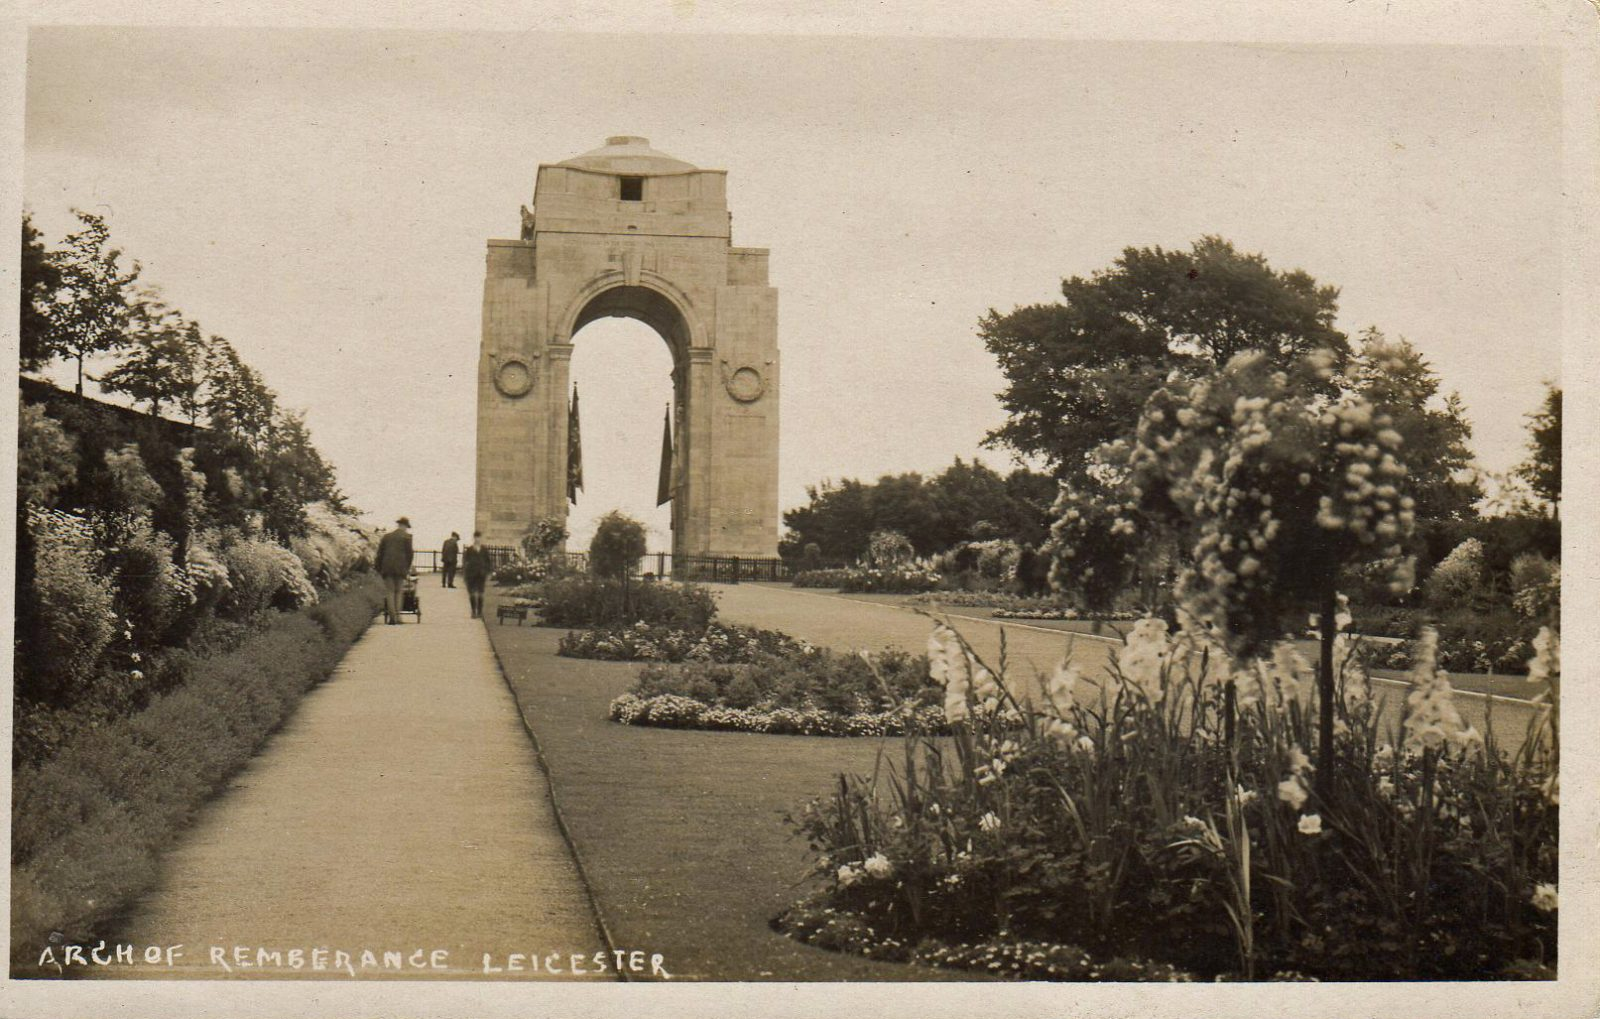 Victoria Park, Leicester. Undated: The Arch of Remembrance (File:1568)